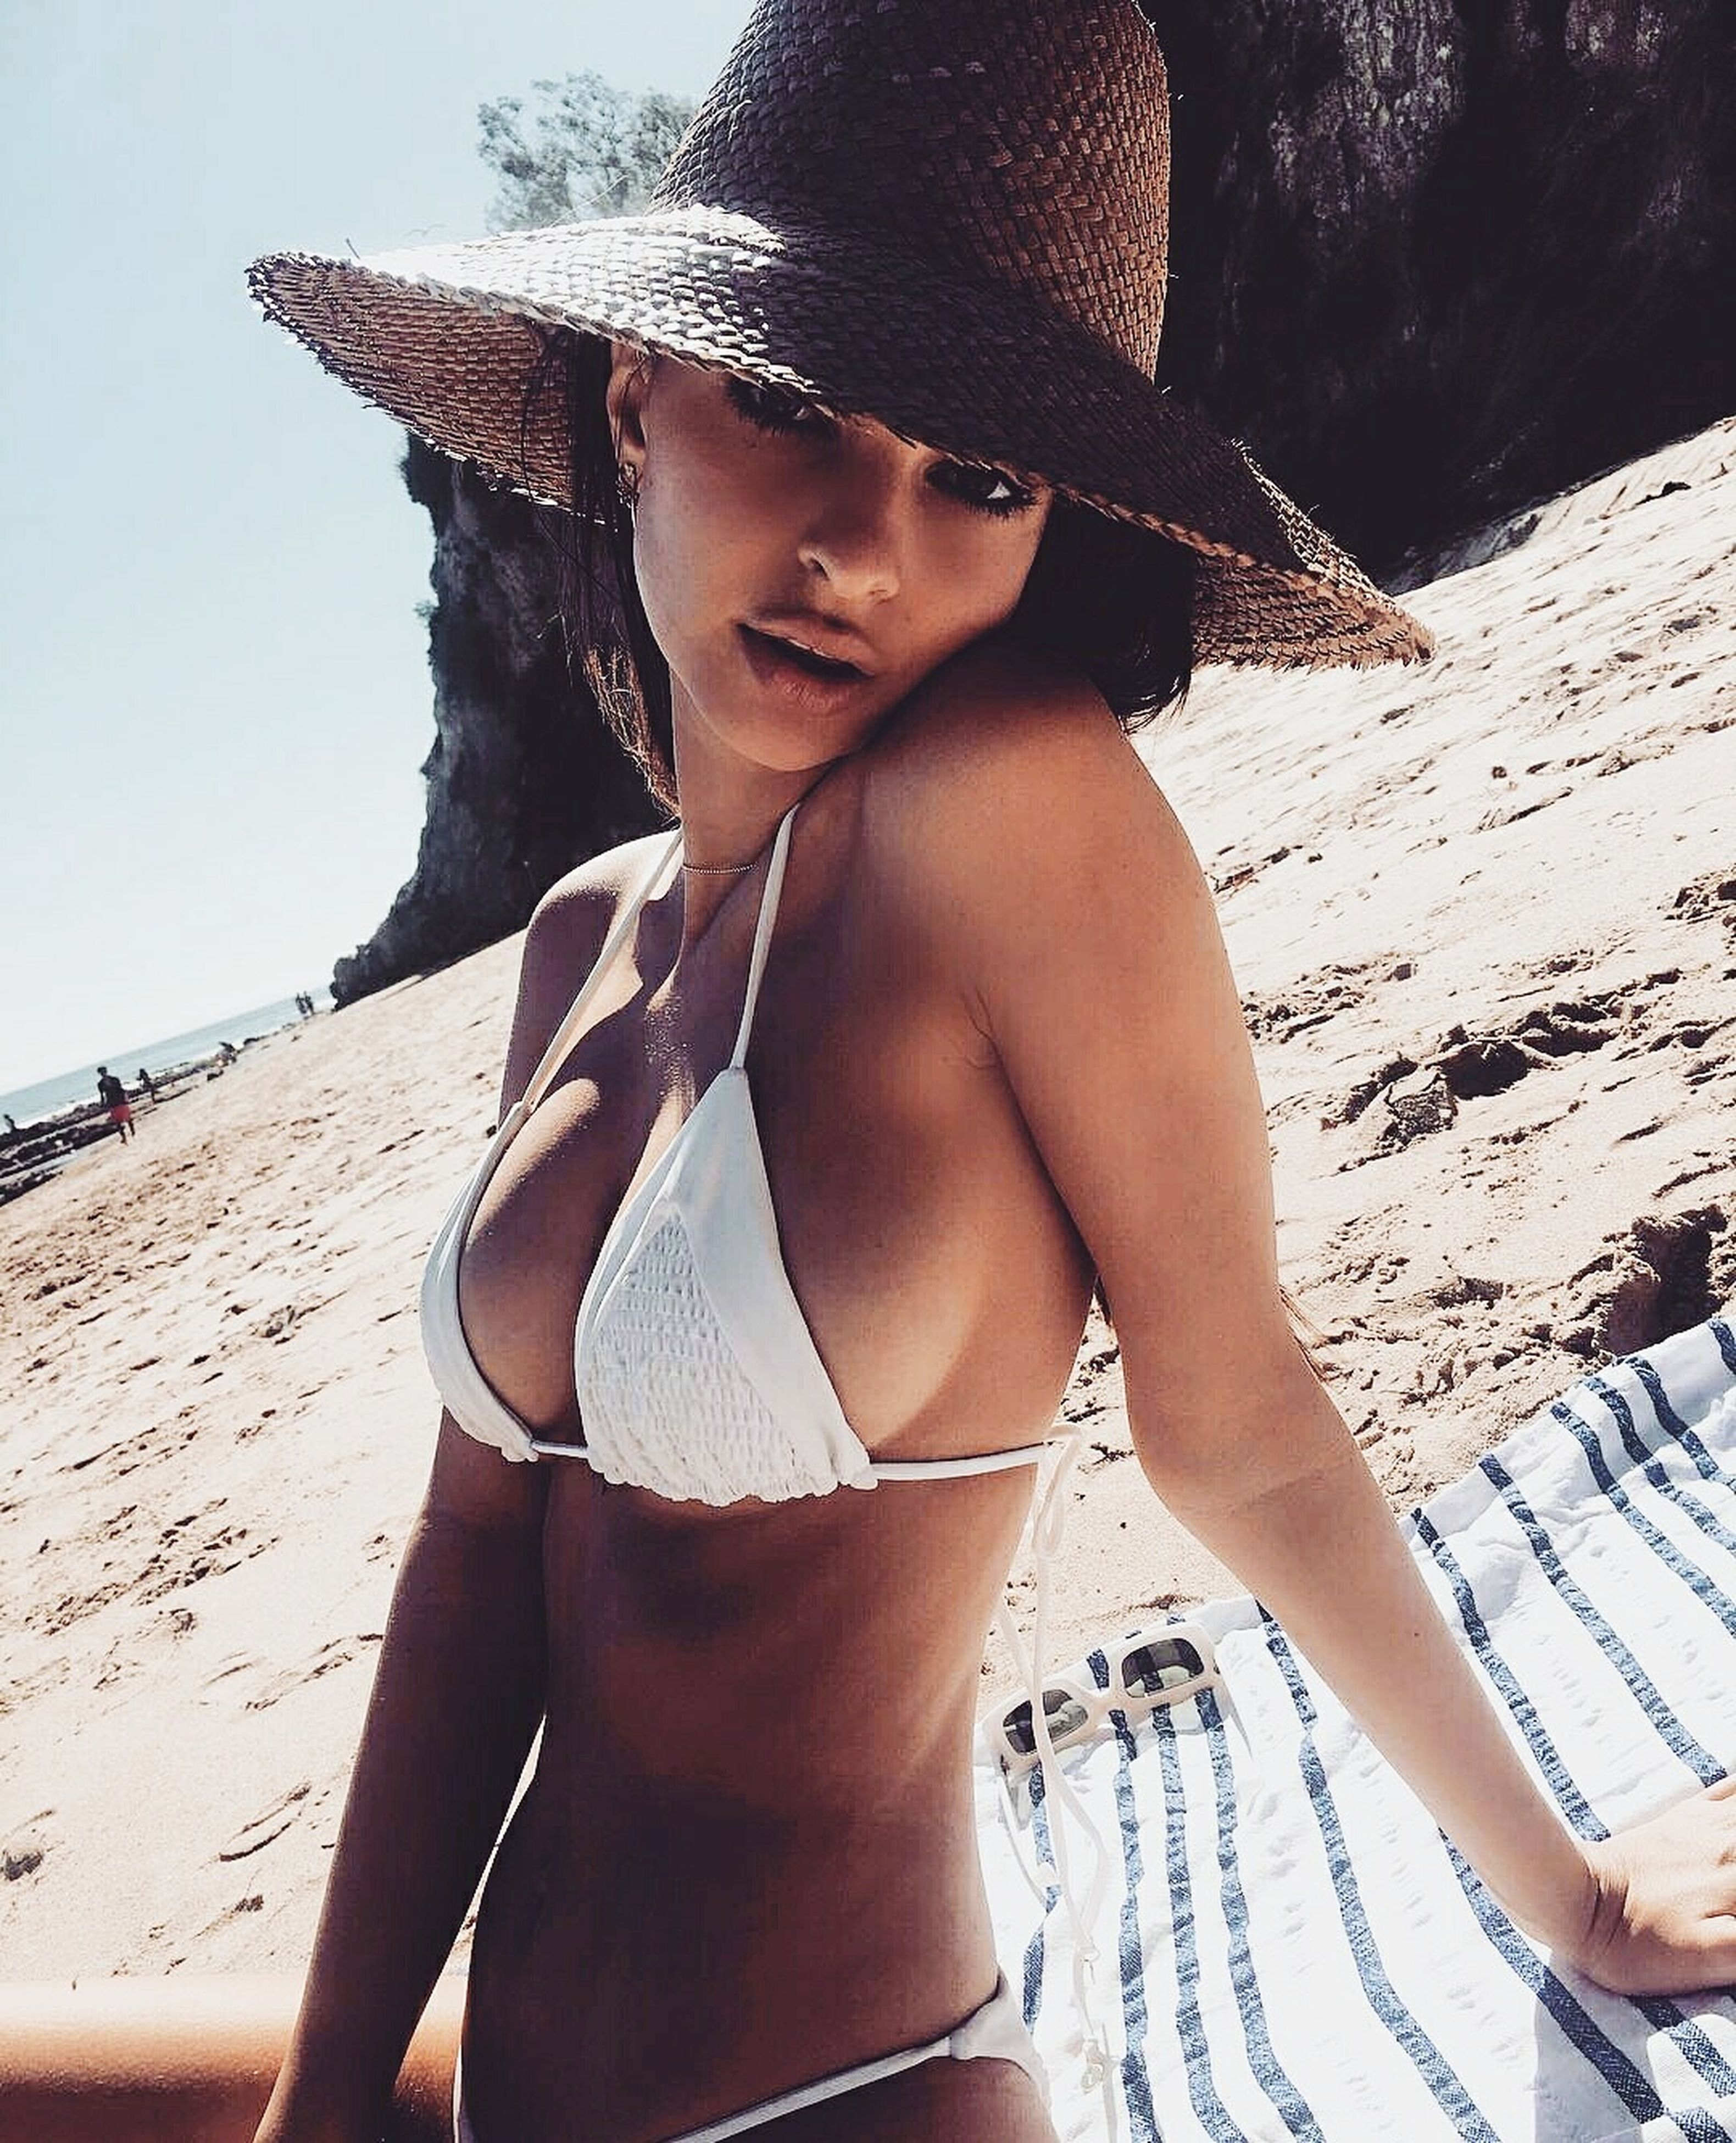 beach, beautiful people, bikini, beauty, sand, young adult, beautiful woman, relaxation, women, young women, vacations, swimwear, lifestyles, summer, sunlight, one person, outdoors, adult, only women, portrait, females, one young woman only, adults only, people, human body part, nature, day